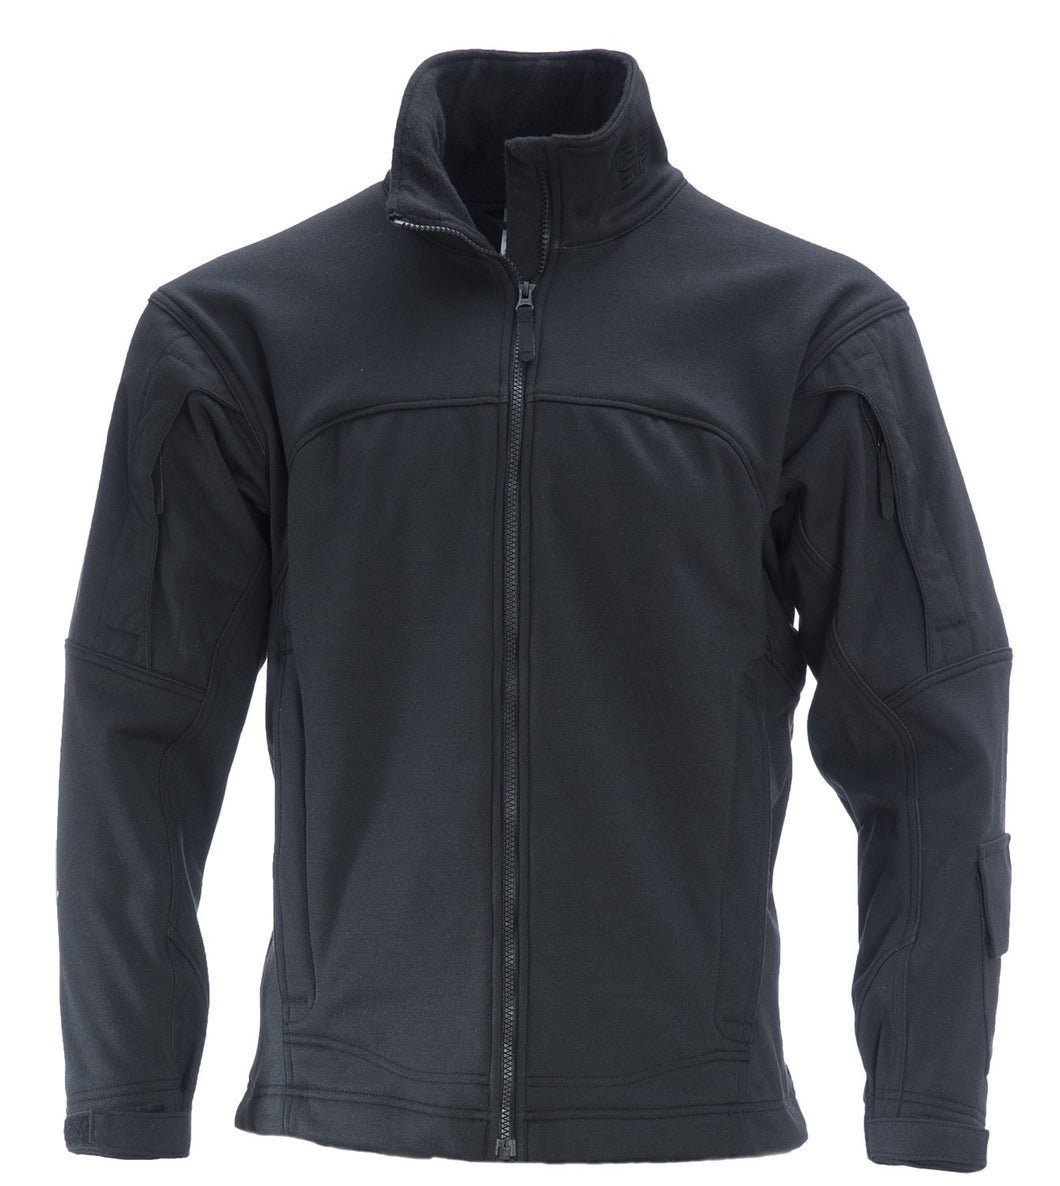 Massif MJKT00005 Flame Resistant Elements Tactical Jacket